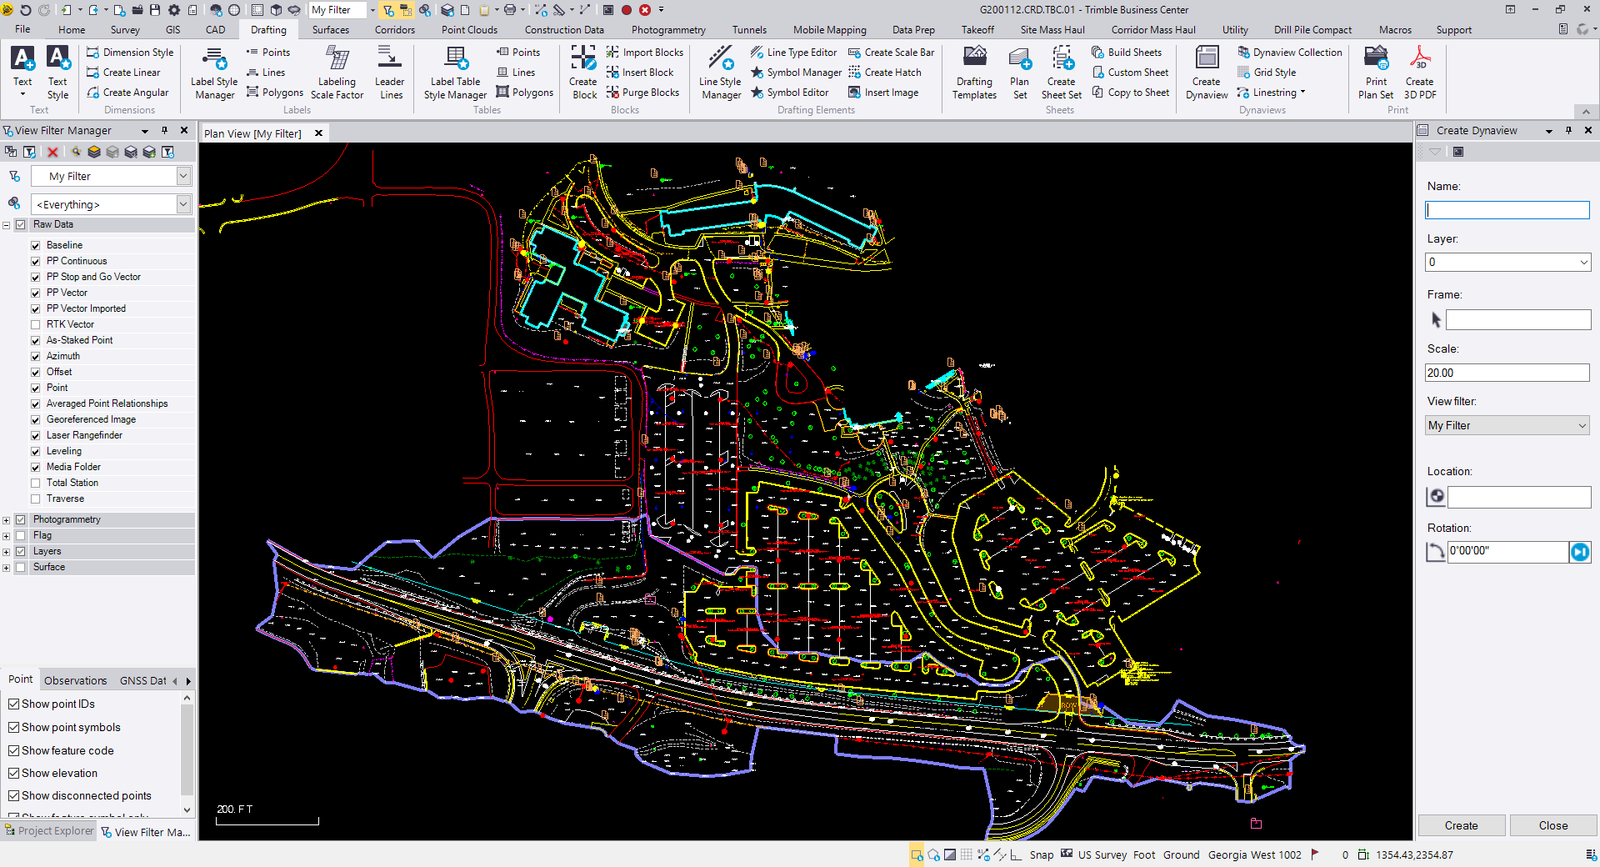 Trimble Unifies Business Center Software to Provide a Single